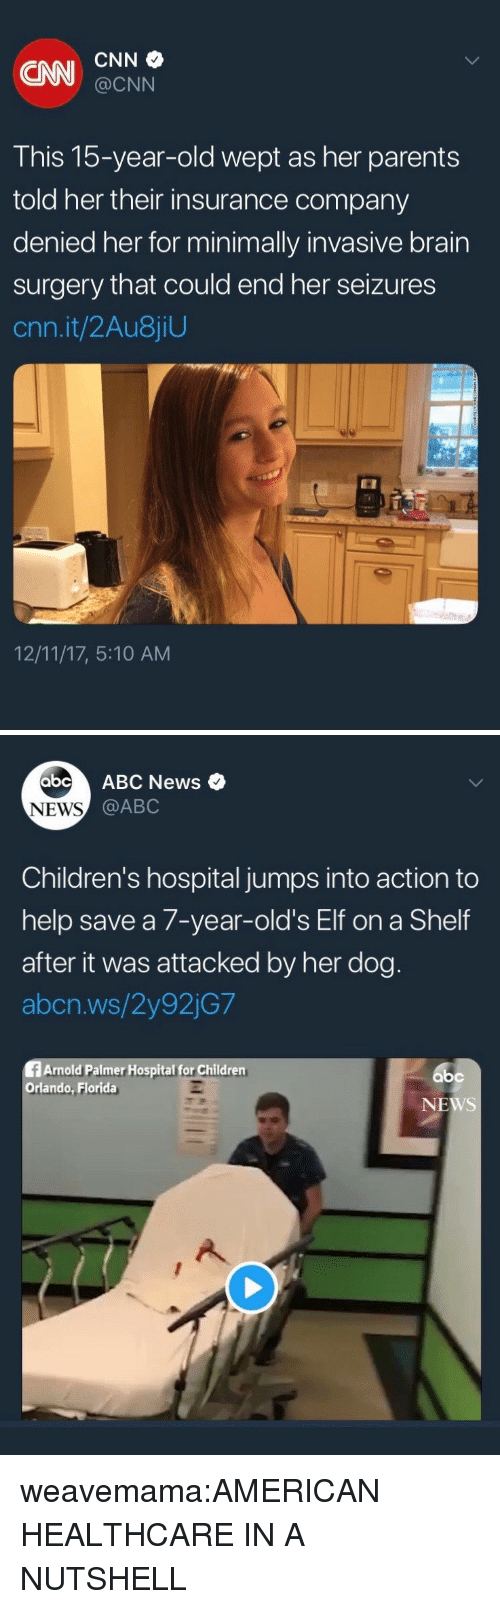 Abc, Children, and cnn.com: CNI CNN  @CNN  This 15-year-old wept as her parents  told her their insurance company  denied her for minimally invasive brain  surgery that could end her seizures  cnn.it/2Au8jiU  12/11/17, 5:10 AM   abcABC News  NEWS  @ABC  Children's hospital jumps into action to  help save a 7-year-old's Elf on a Shelf  after it was attacked by her dog  abcn.ws/2y92jG7  fArnold Palmer Hospital for Children  Orlando, Florida  bc  NEWS weavemama:AMERICAN HEALTHCARE IN A NUTSHELL